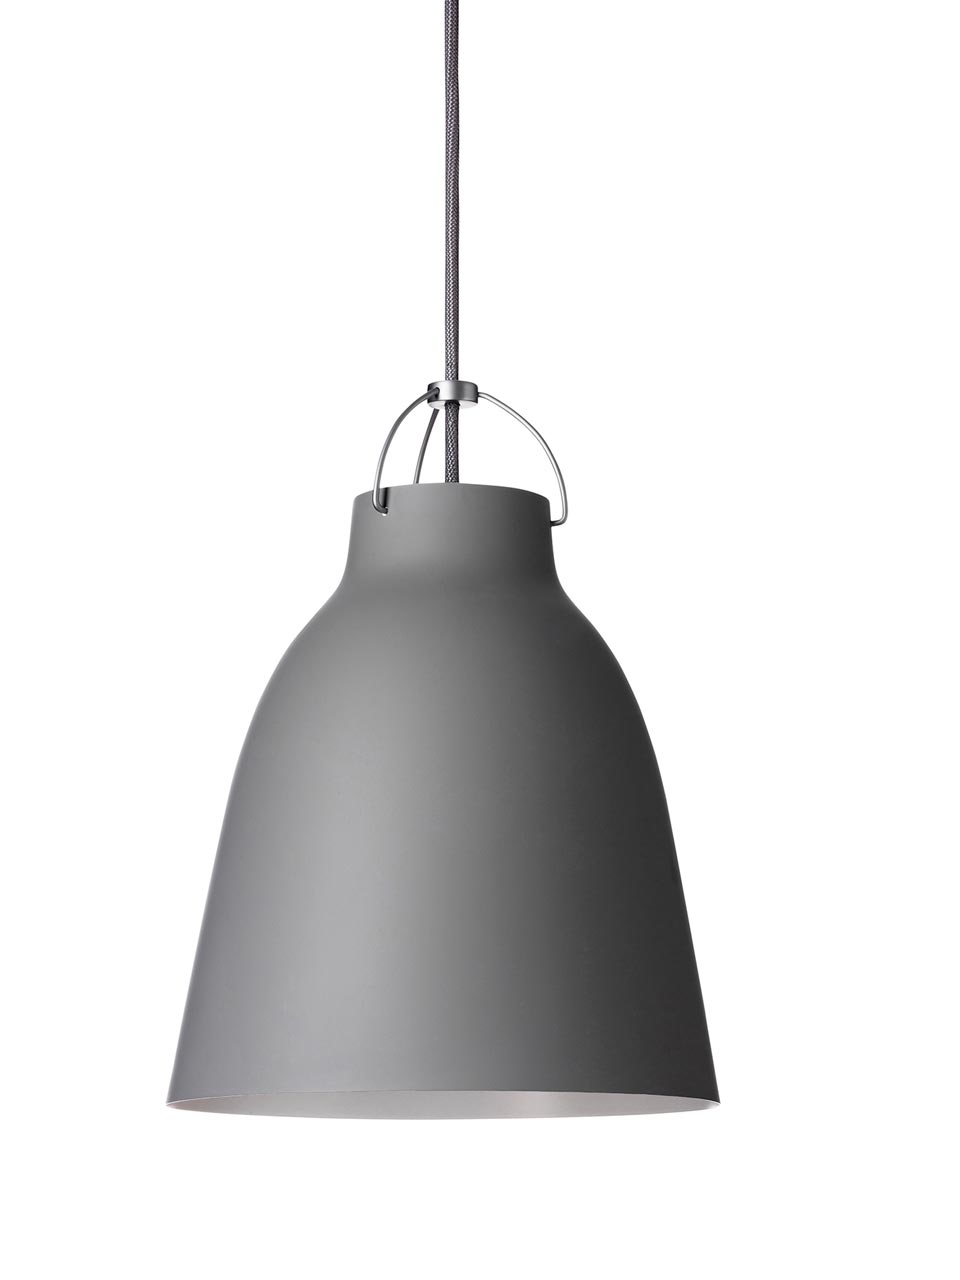 Caravaggio Matt suspension MM gris 45-foncé- mat. Light Years.